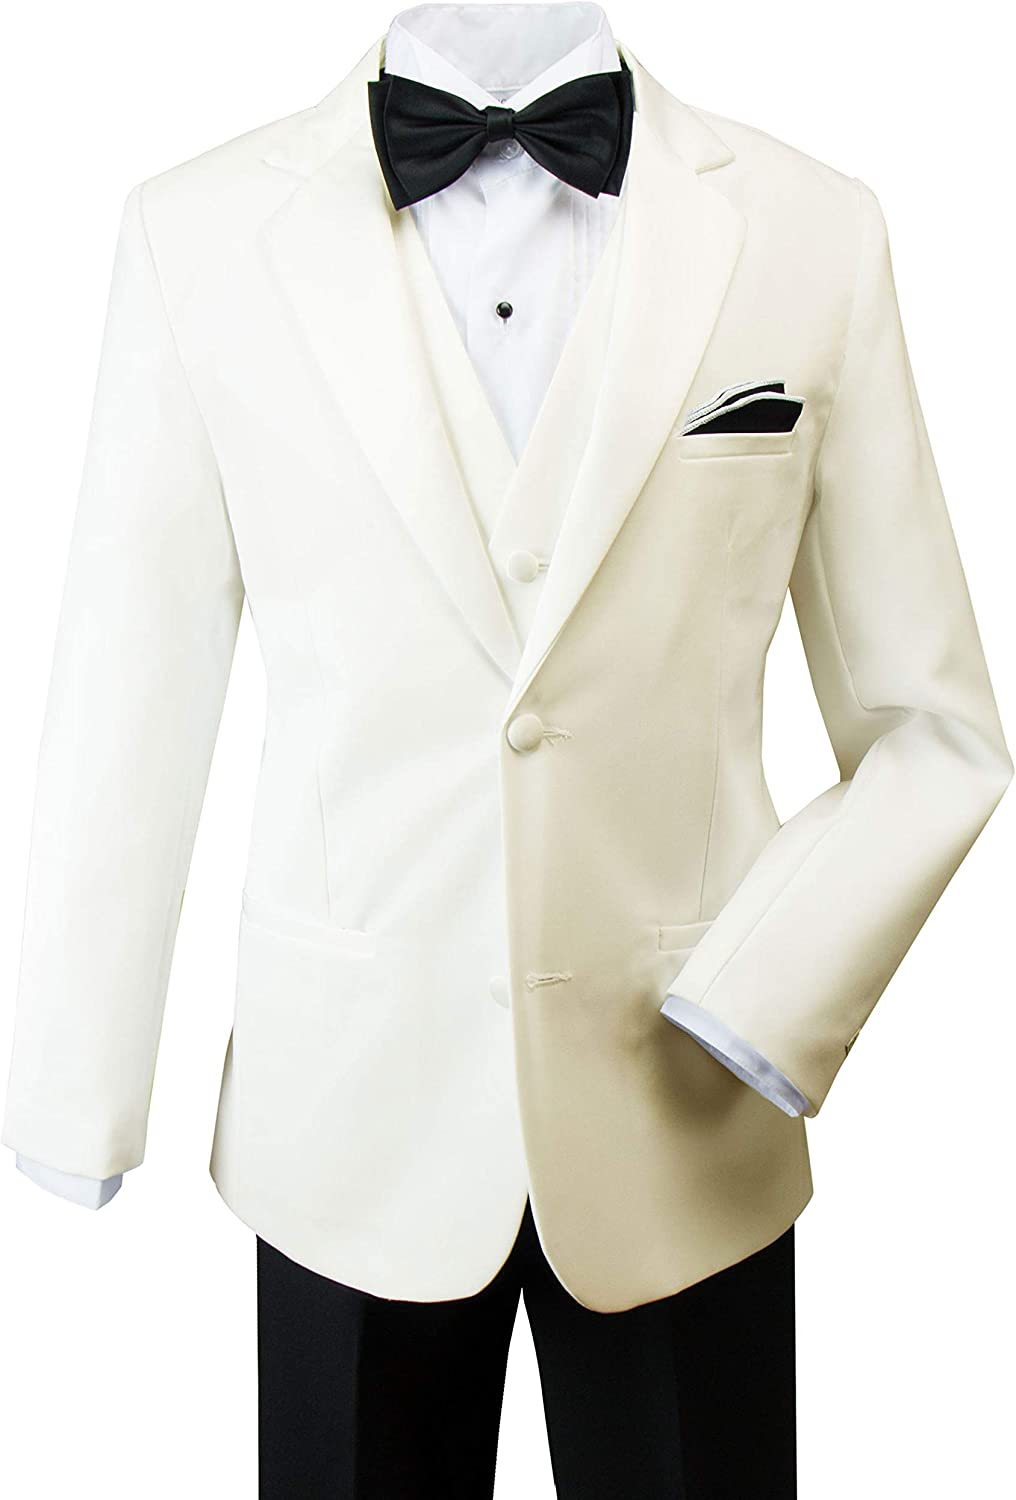 Spring Notion Boys Modern Fit Khaki Dress Suit Set with Bow Tie